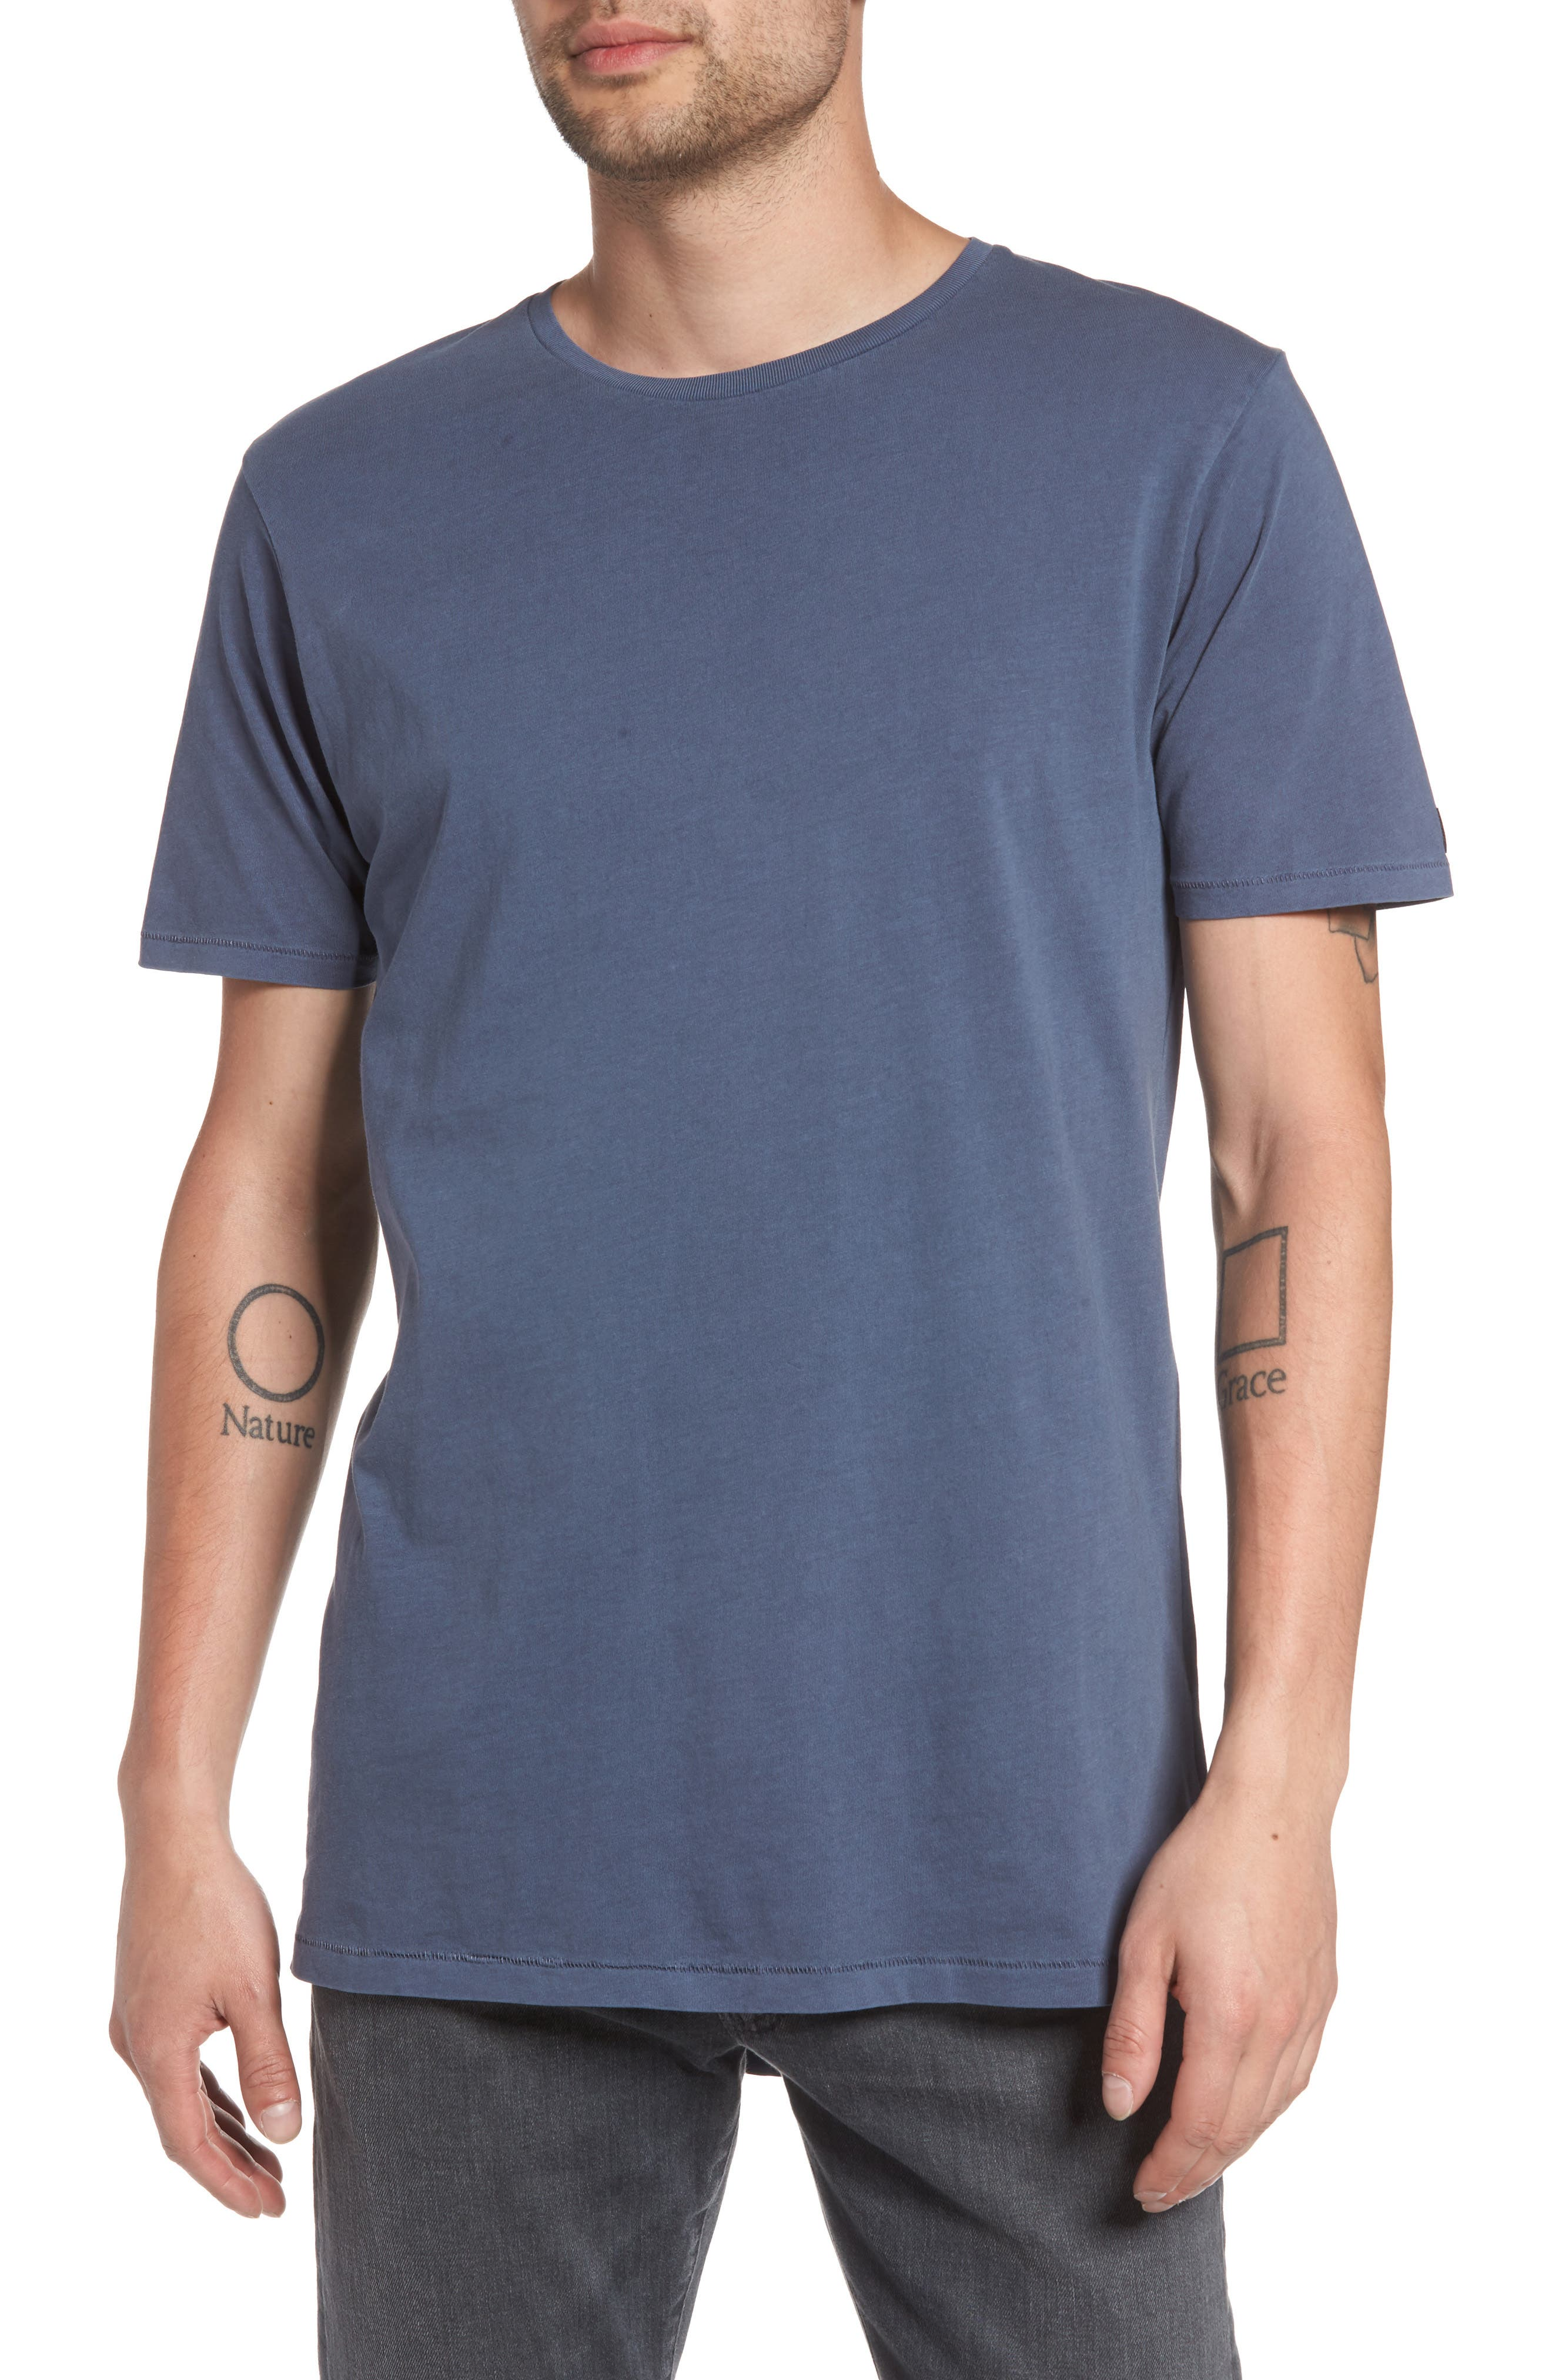 Flintlock Stripe T-Shirt,                             Main thumbnail 1, color,                             PIGMENT BLUE GREY